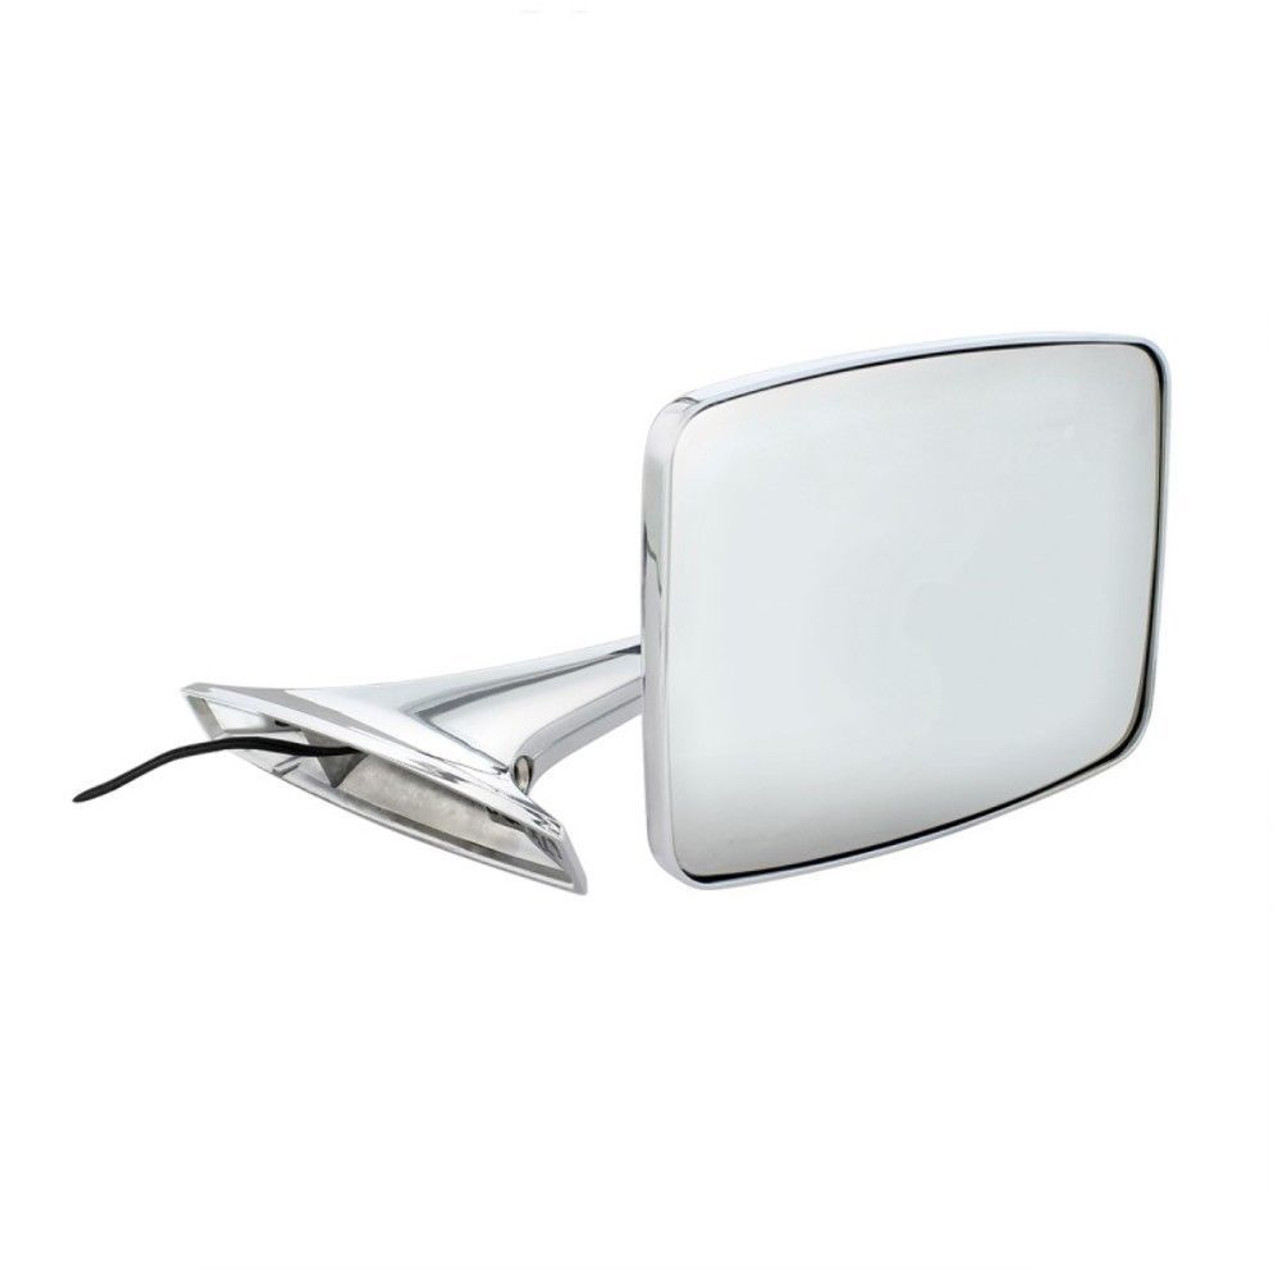 1973-87 Chevy & GMC Truck Convex Exterior Mirror, Right Hand Side With LED Turn